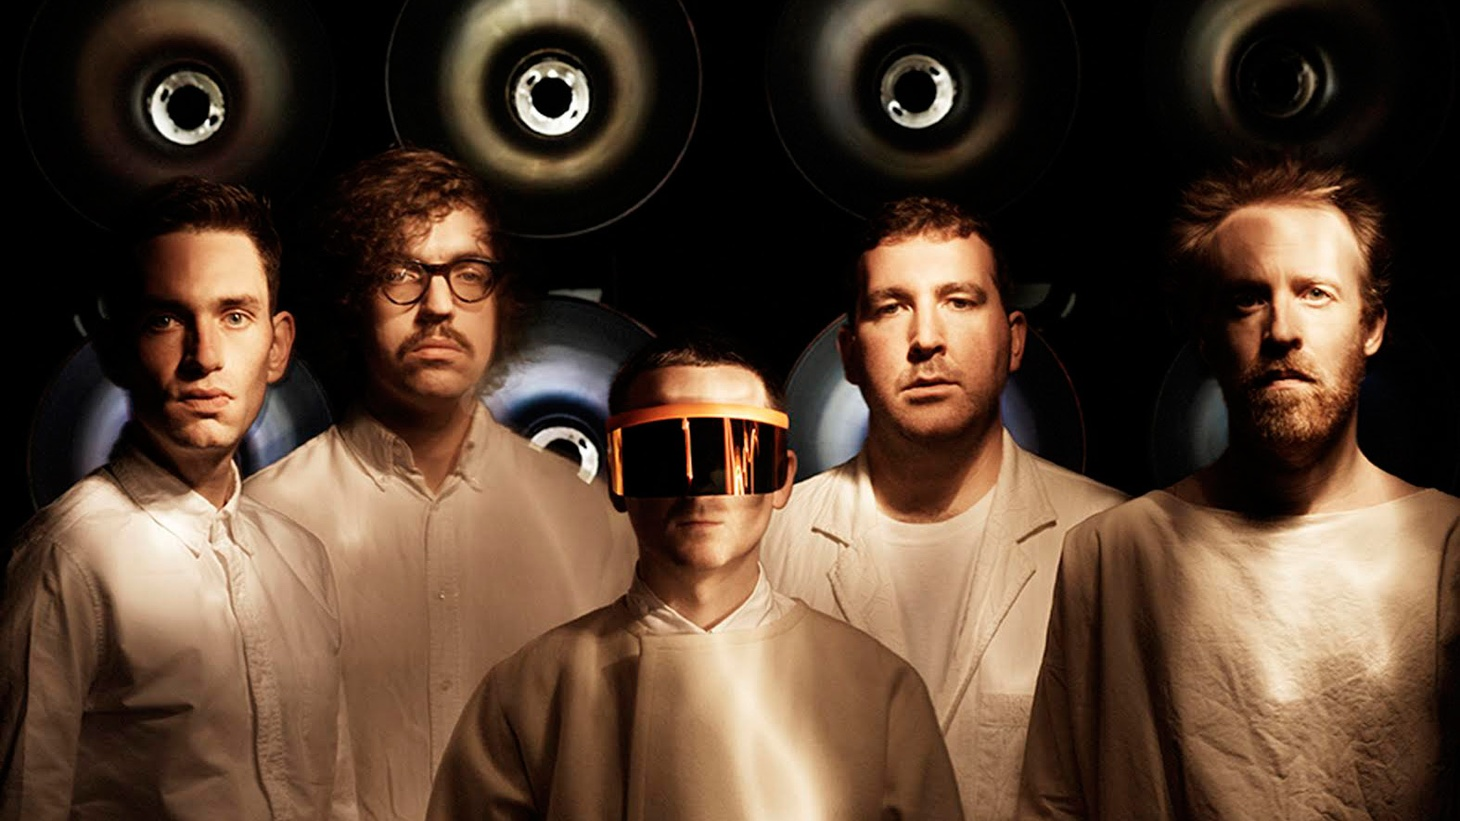 Just the mention of London's Hot Chip gets feet in motion.